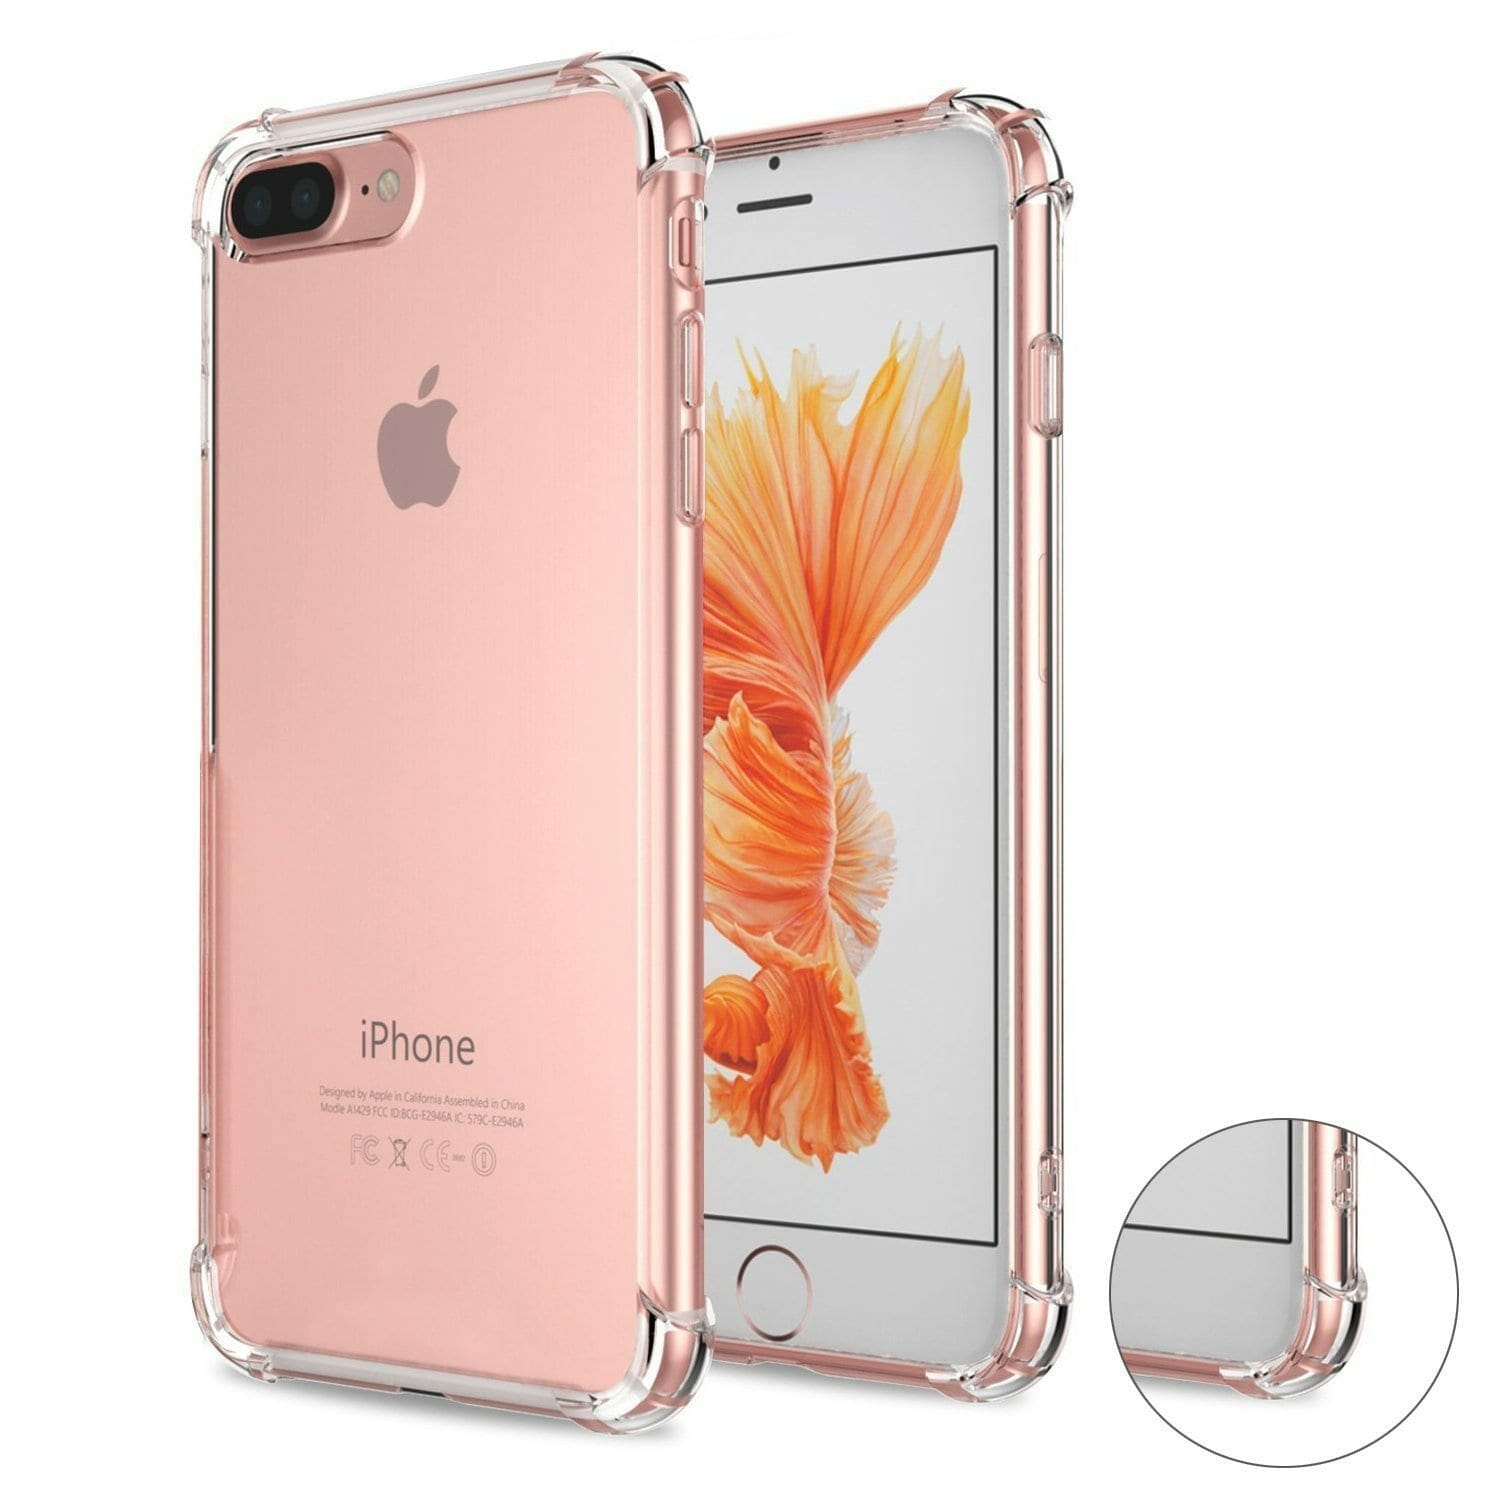 iPhone 7 Plus Crystal Clear Case